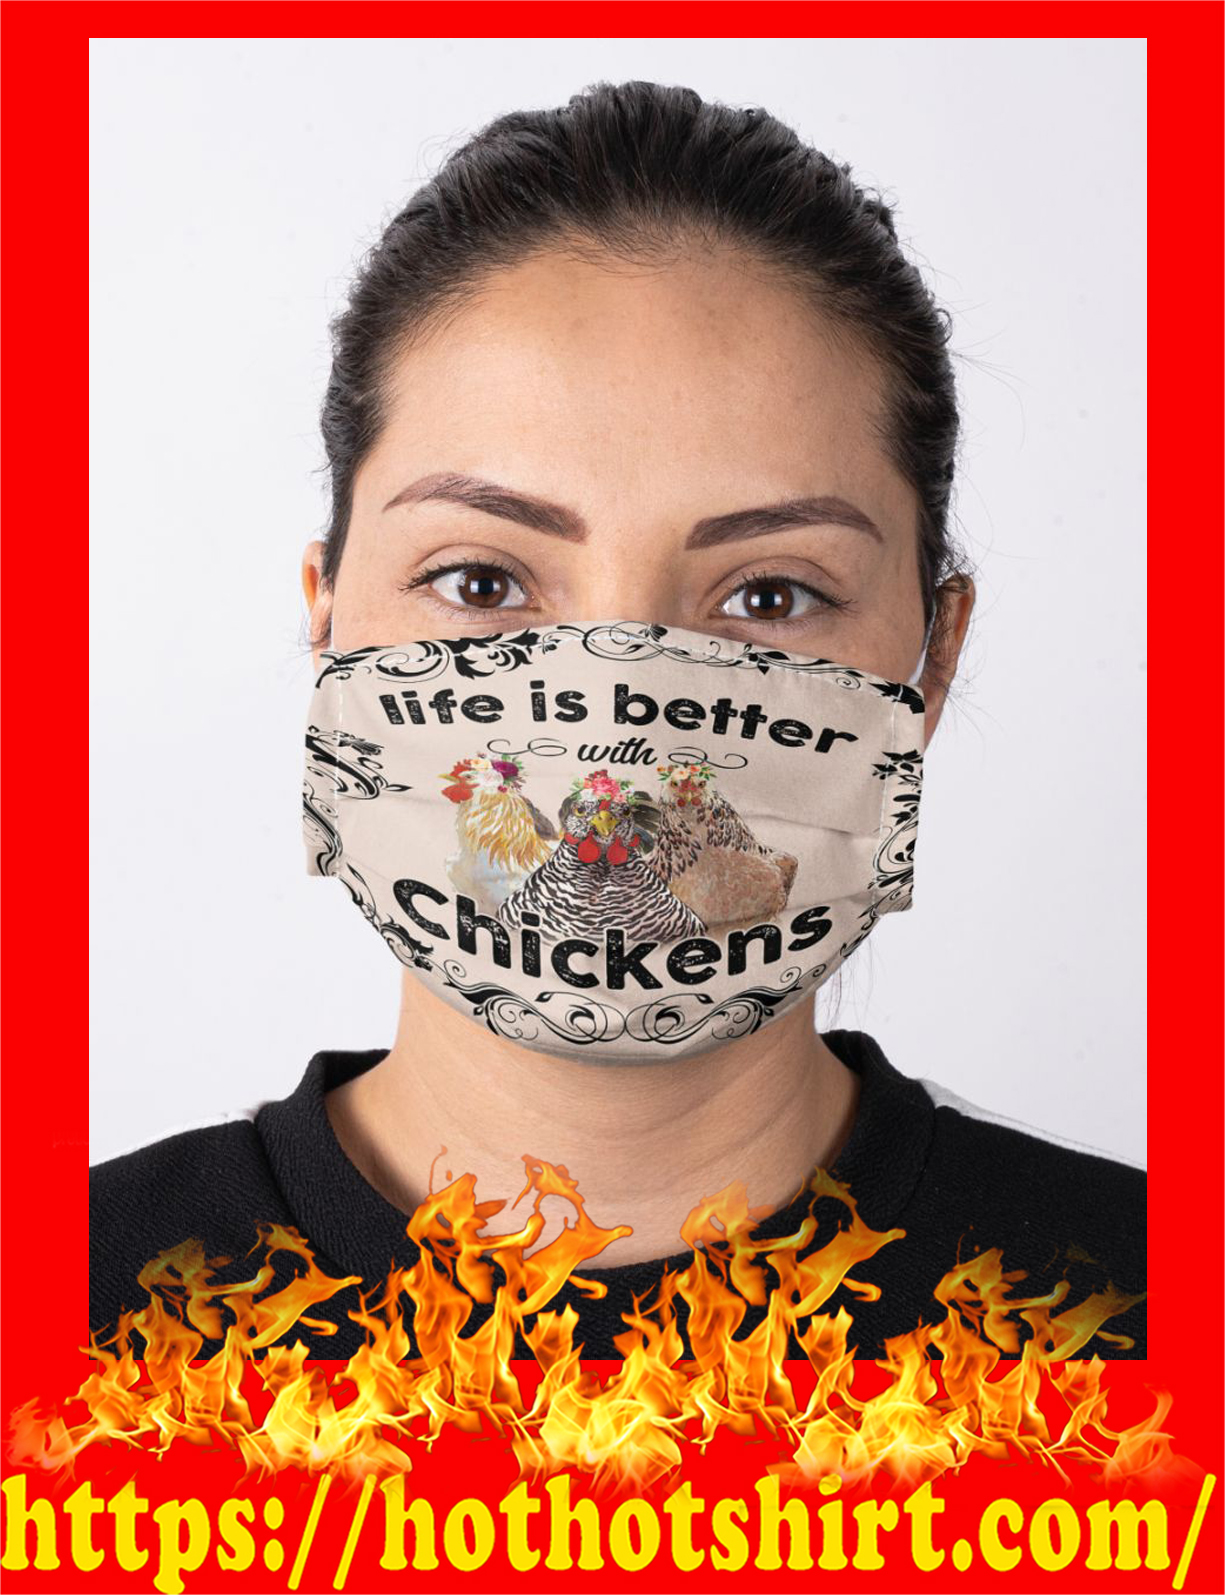 Life is better with chickens face mask - detail